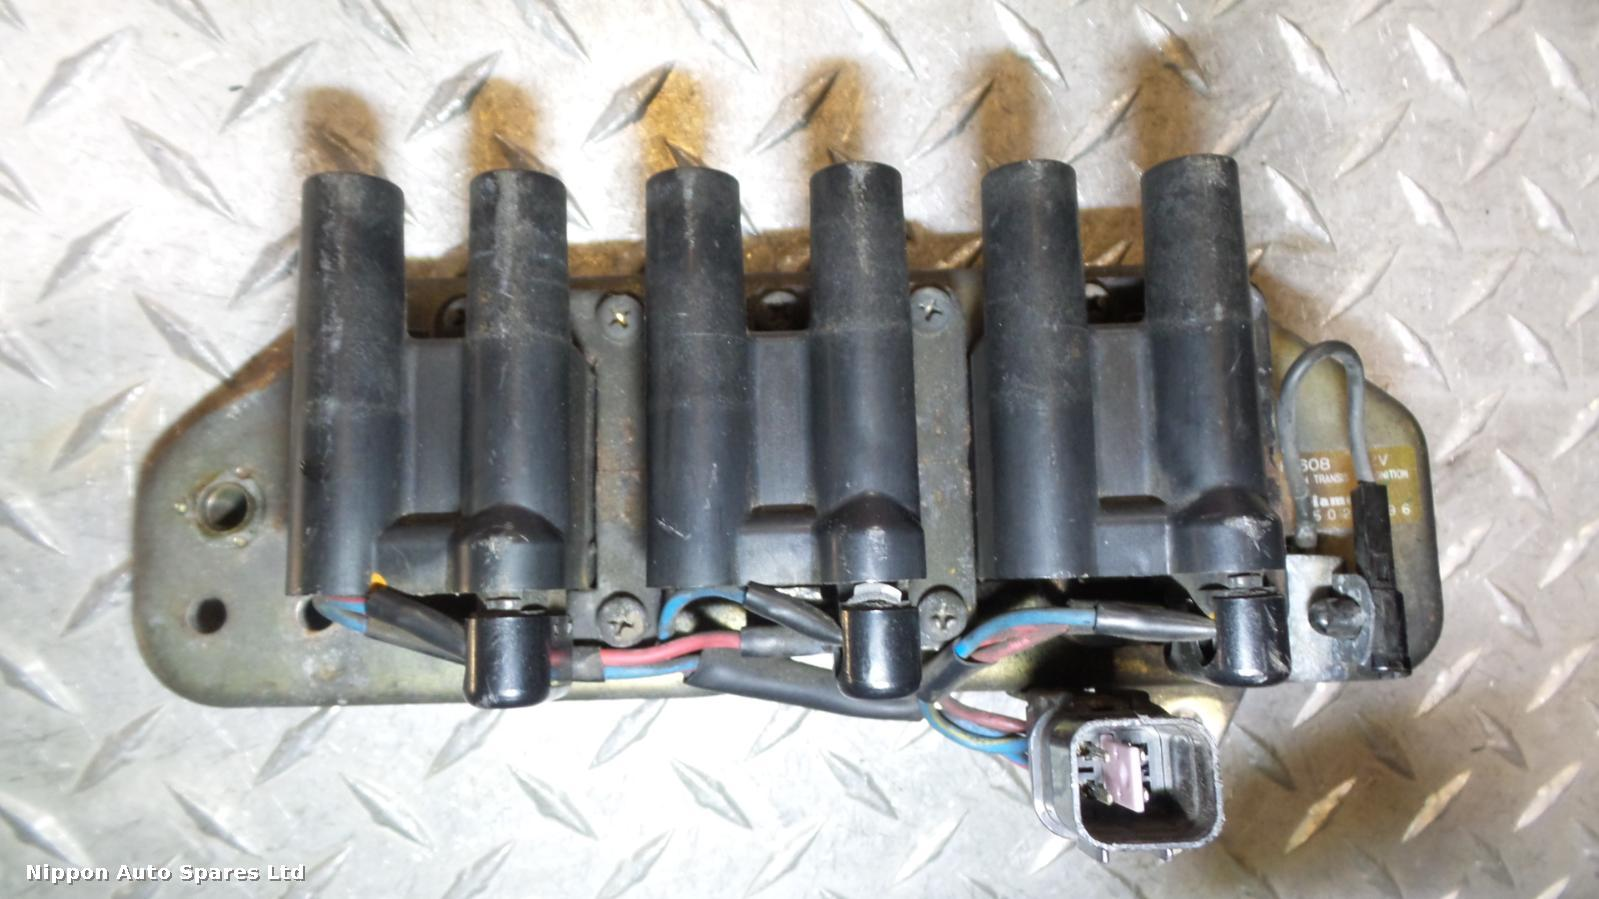 Mitsubishi GTO Coil/Coil Pack F-608 SOLD AS SET OF 3 1990-1999: 43821